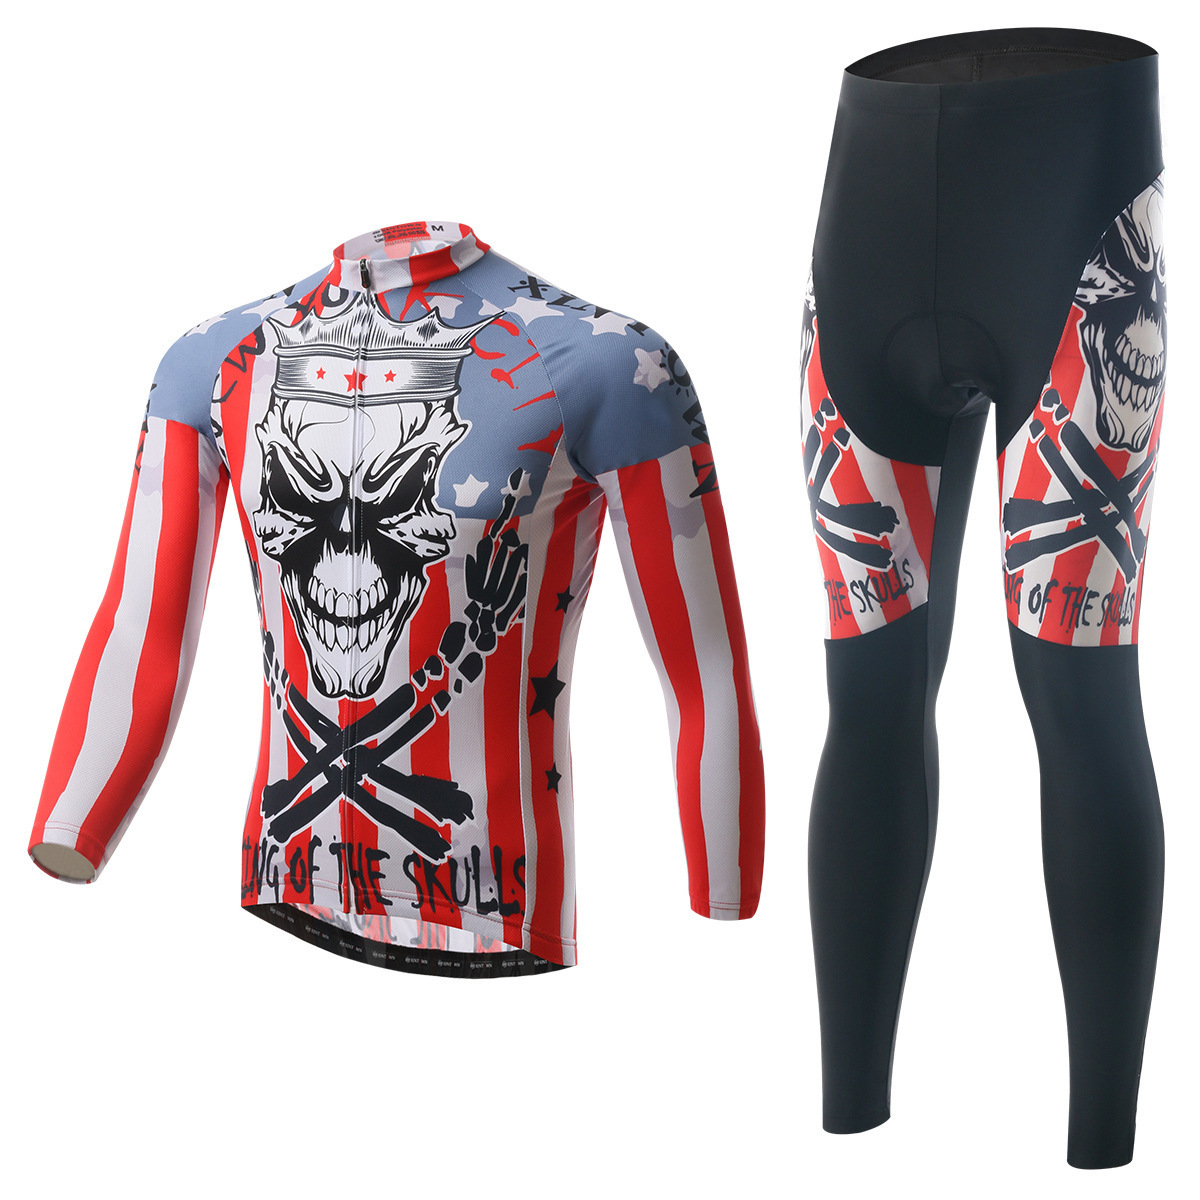 XINTOWN Cycling Jersey Men Long Sleeve Set Bike Cycle Clothing Spring Autumn Sets Invierno Bicycle Clothing Sport Wear veobike winter thermal brand pro team cycling jersey set long sleeve bicycle bike cloth cycle pantalones ropa ciclismo invierno